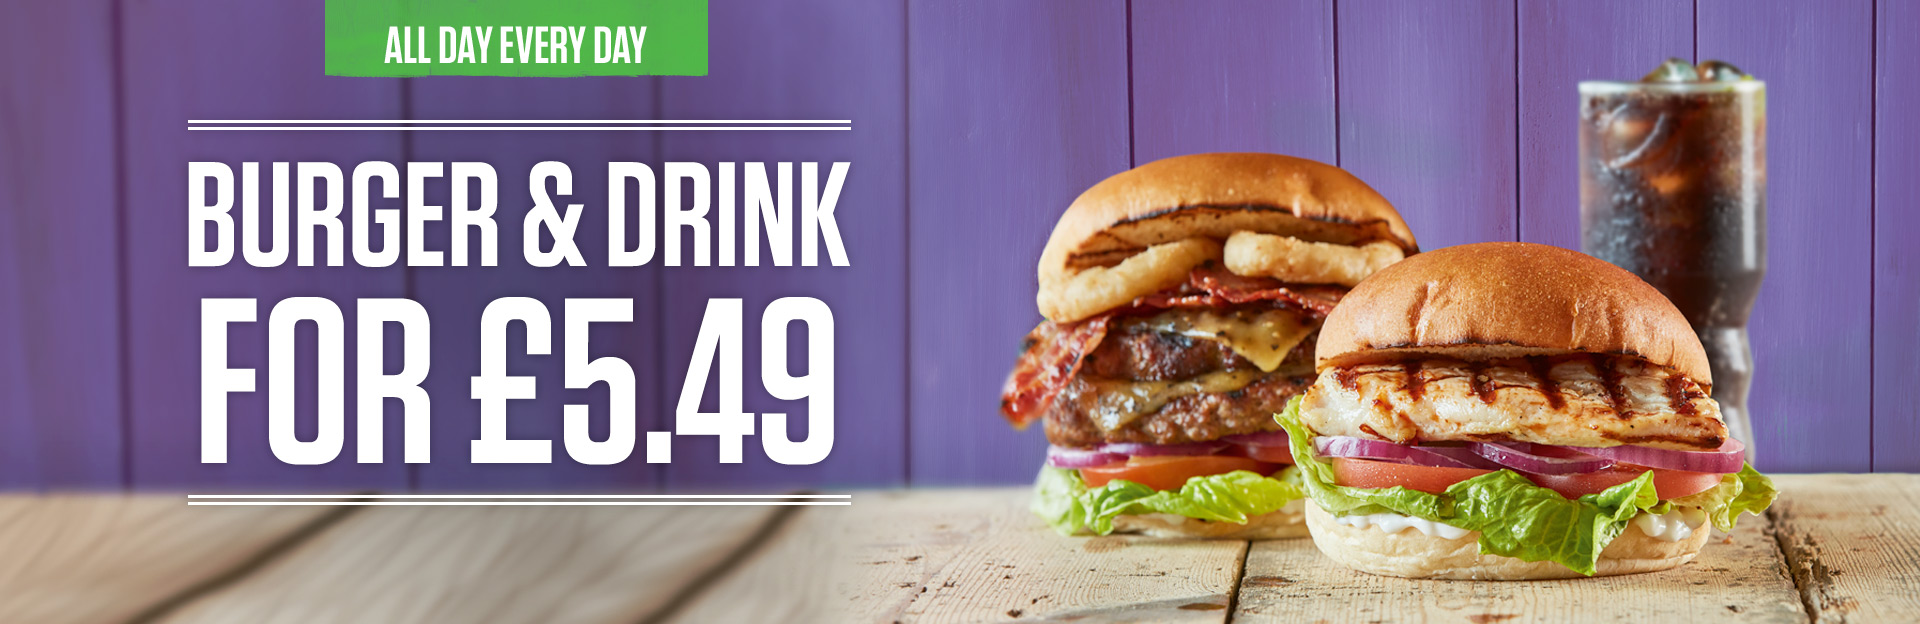 Burger and Drink Deal at The Owington Farm